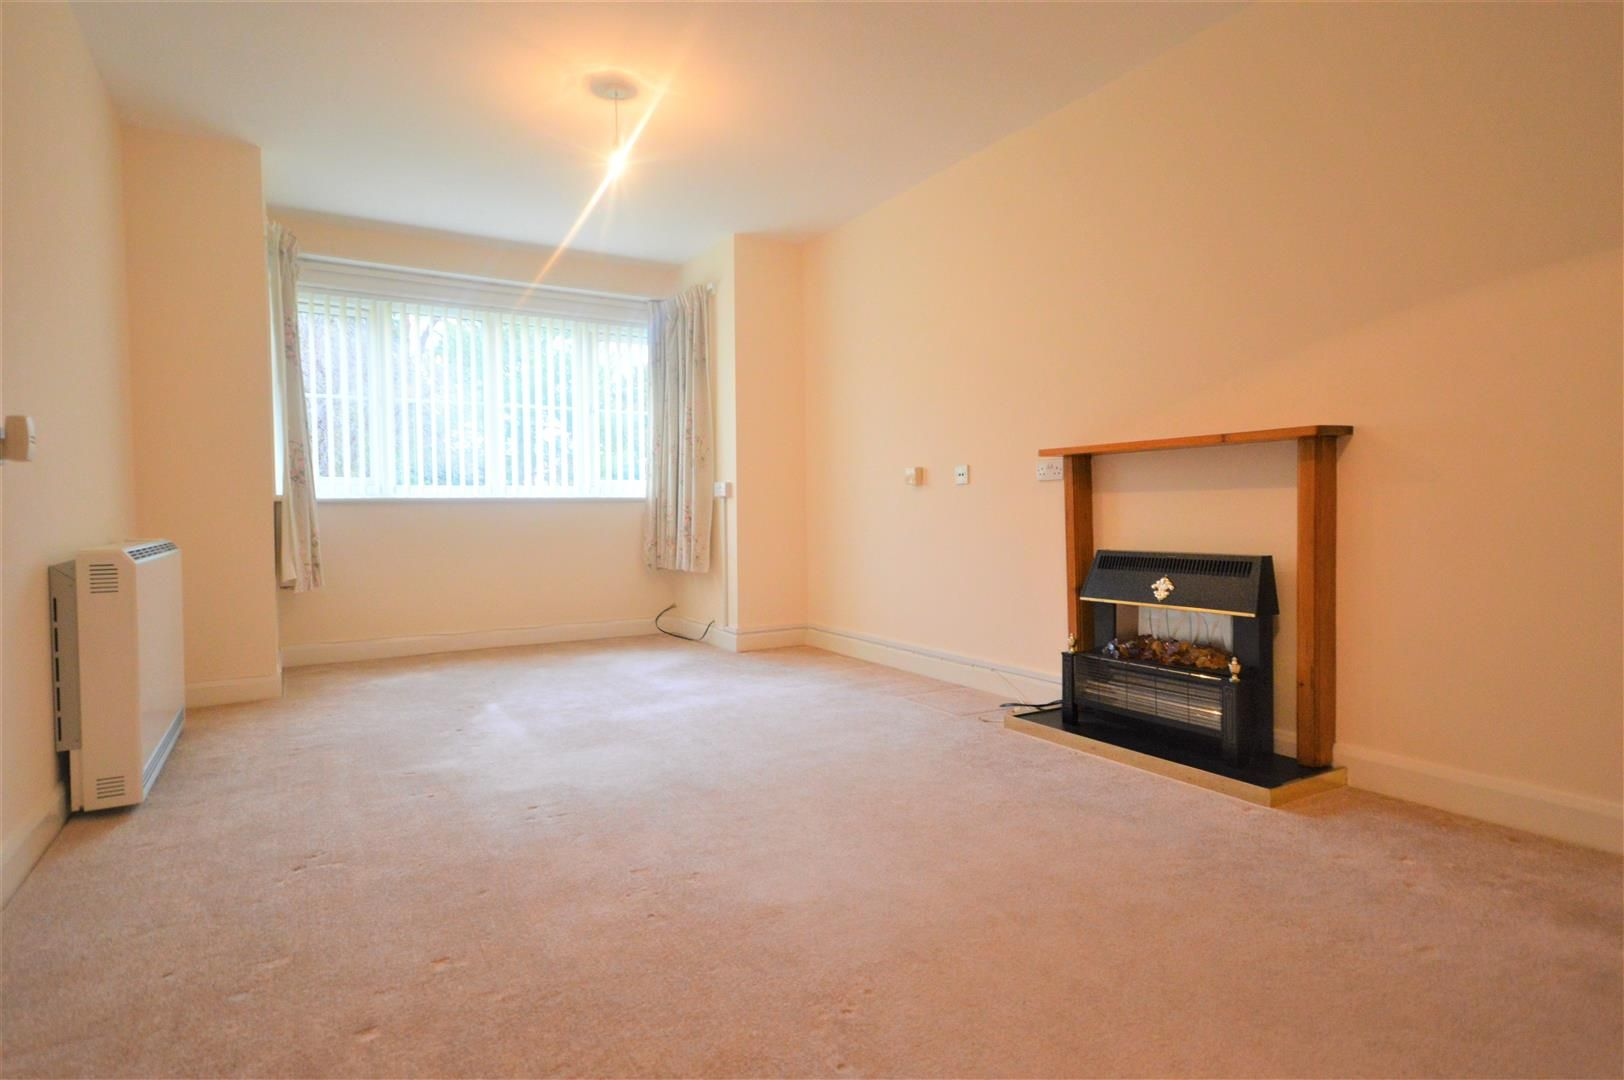 1 bed retirement-property for sale in Leominster 4